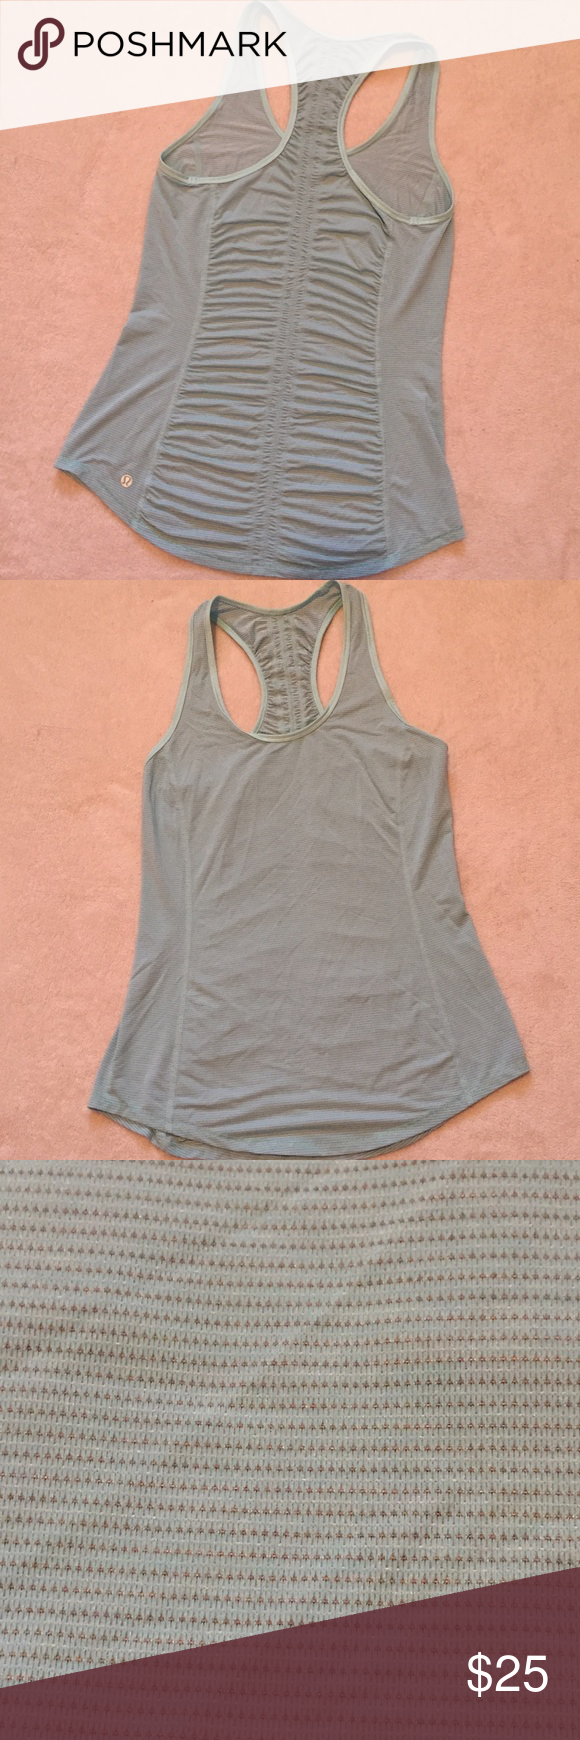 """lululemon athletica tank top ❤️️ Brand:  lululemon athletica  ❤️️Size: no tags, guessing a 6 or 8 based off my experience  ❤️️Color: light turquoise  ❤️️ Condition: like new ❤️️Measurements:   Total Length 26"""" Bust 14""""  💕Make an offer!💕 💕 Bundle 2+ items and save 30%!💕 lululemon athletica Tops Tank Tops"""